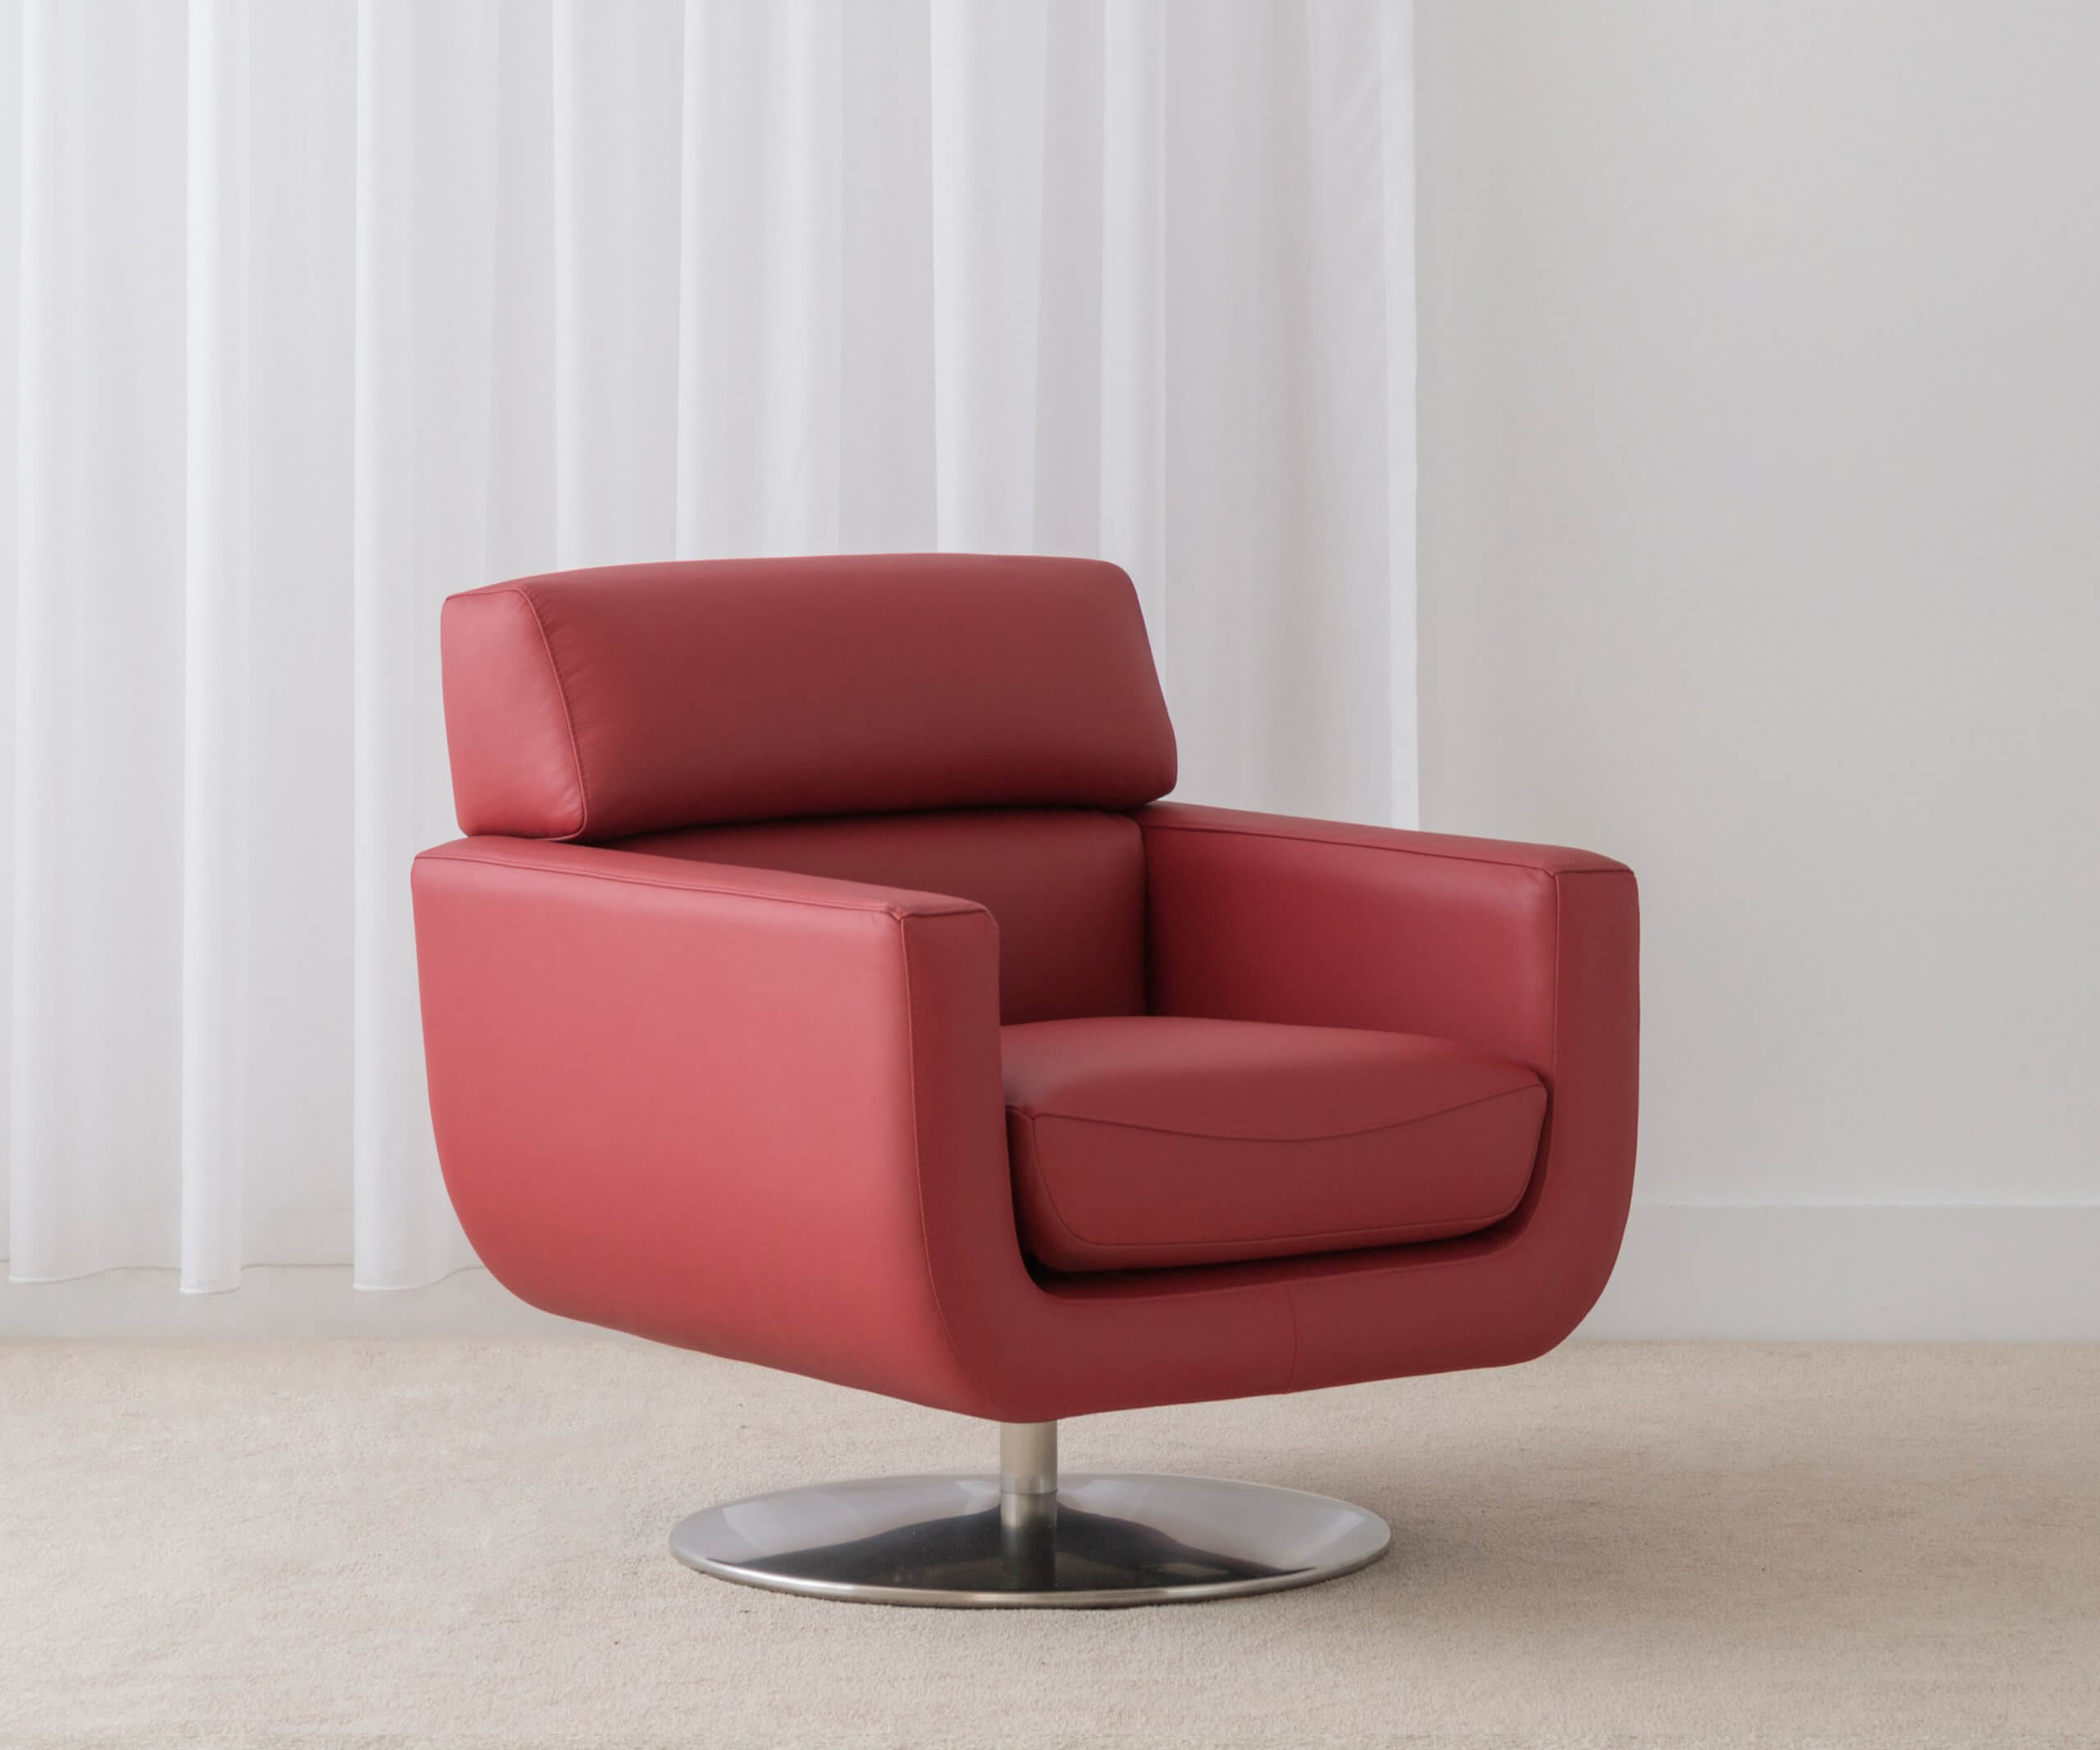 red leather swivel chair made in Adelaide